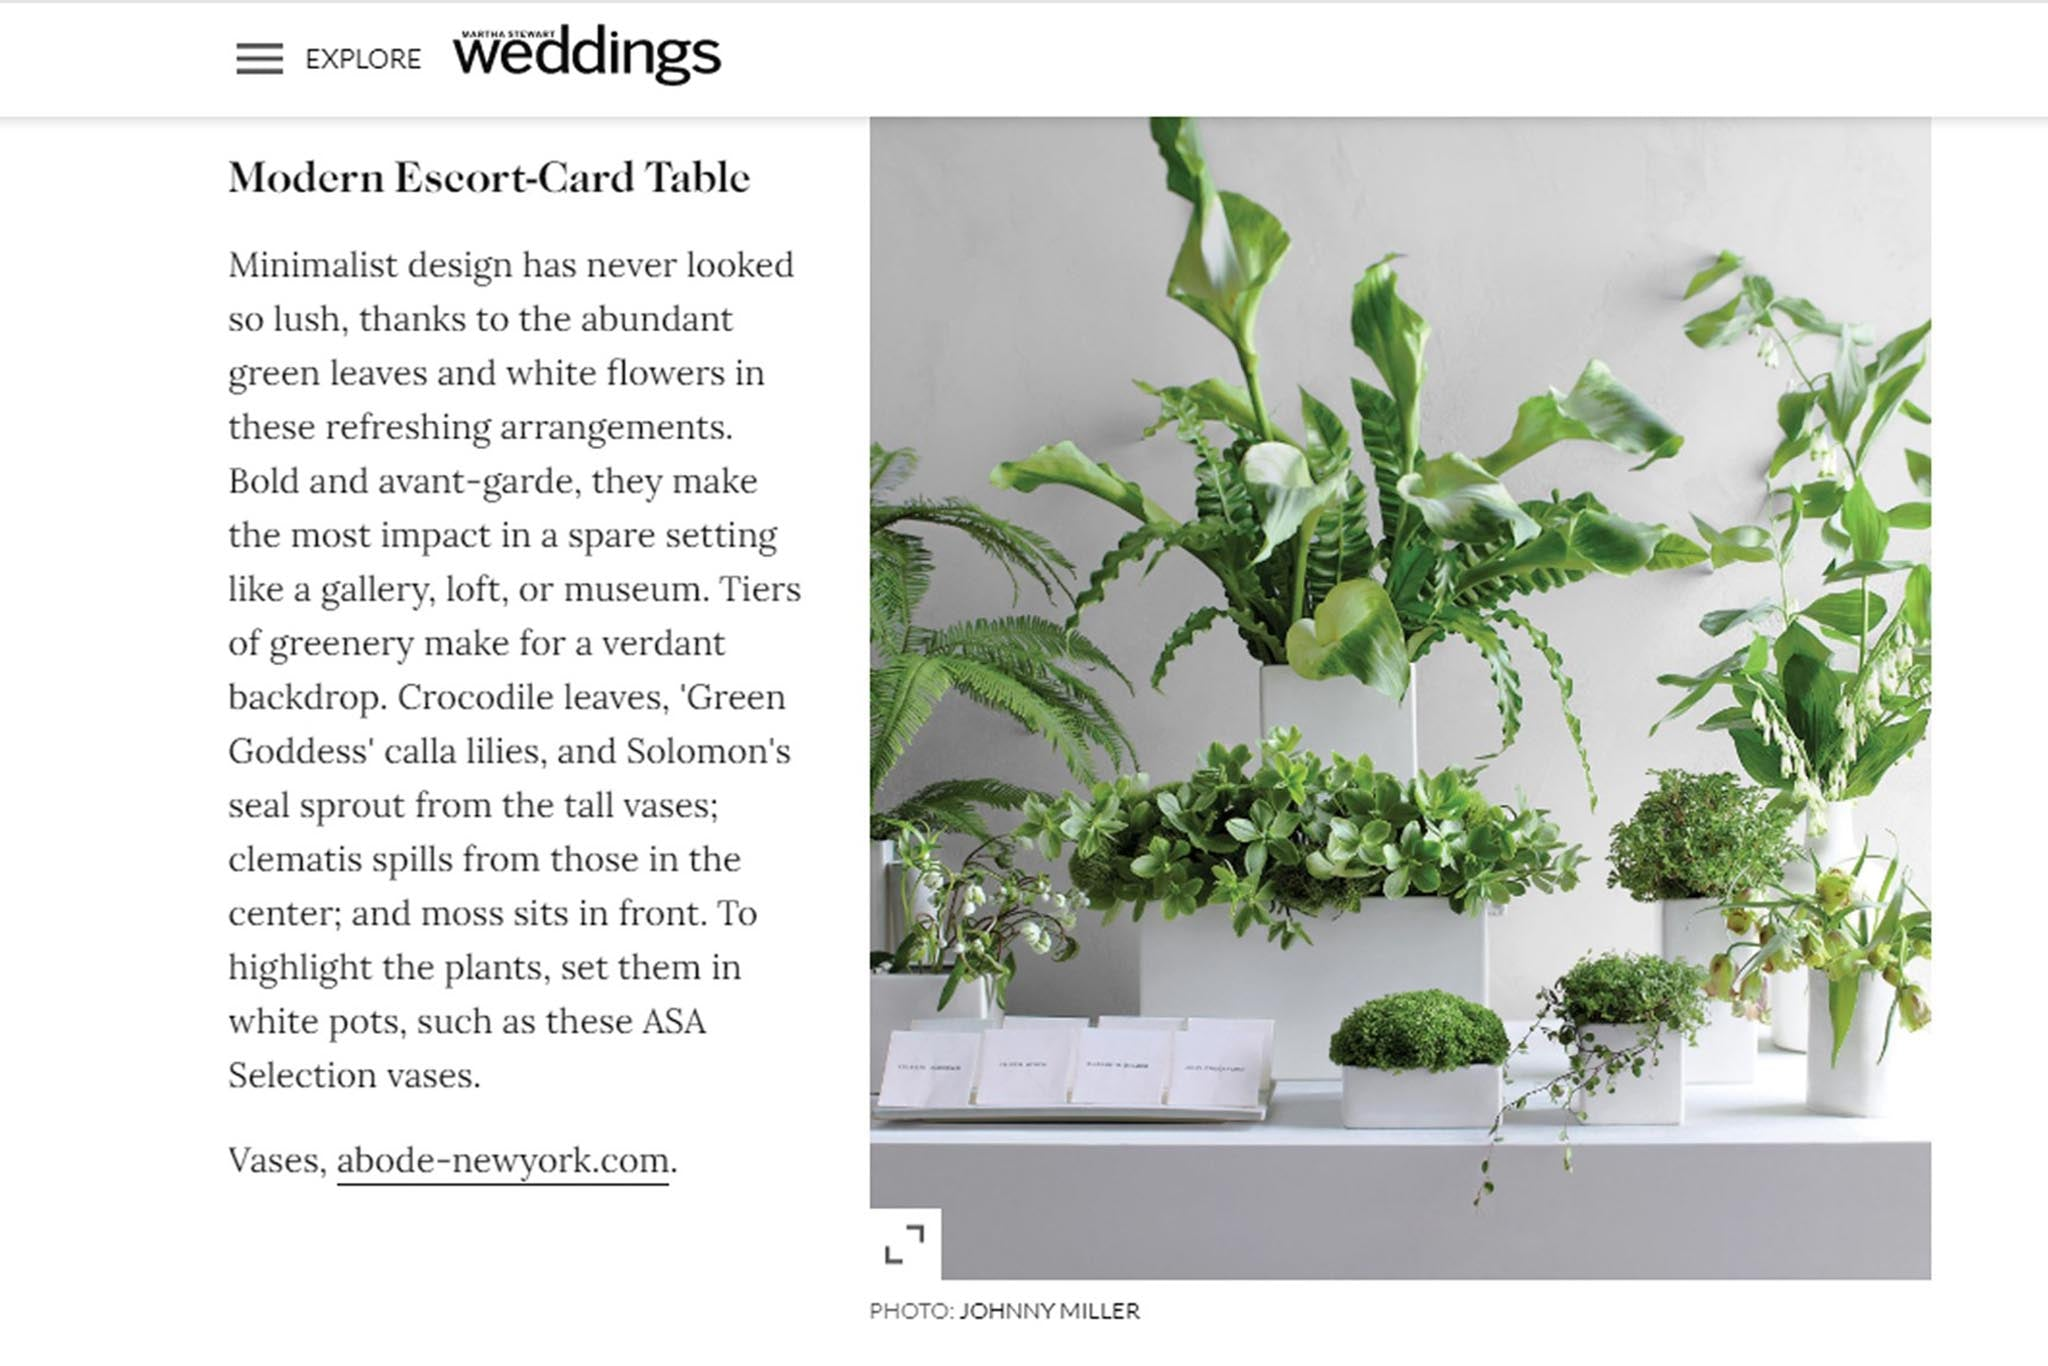 Wedding Flower Ideas for Every Style of Bride: Modern Escort-Card Table